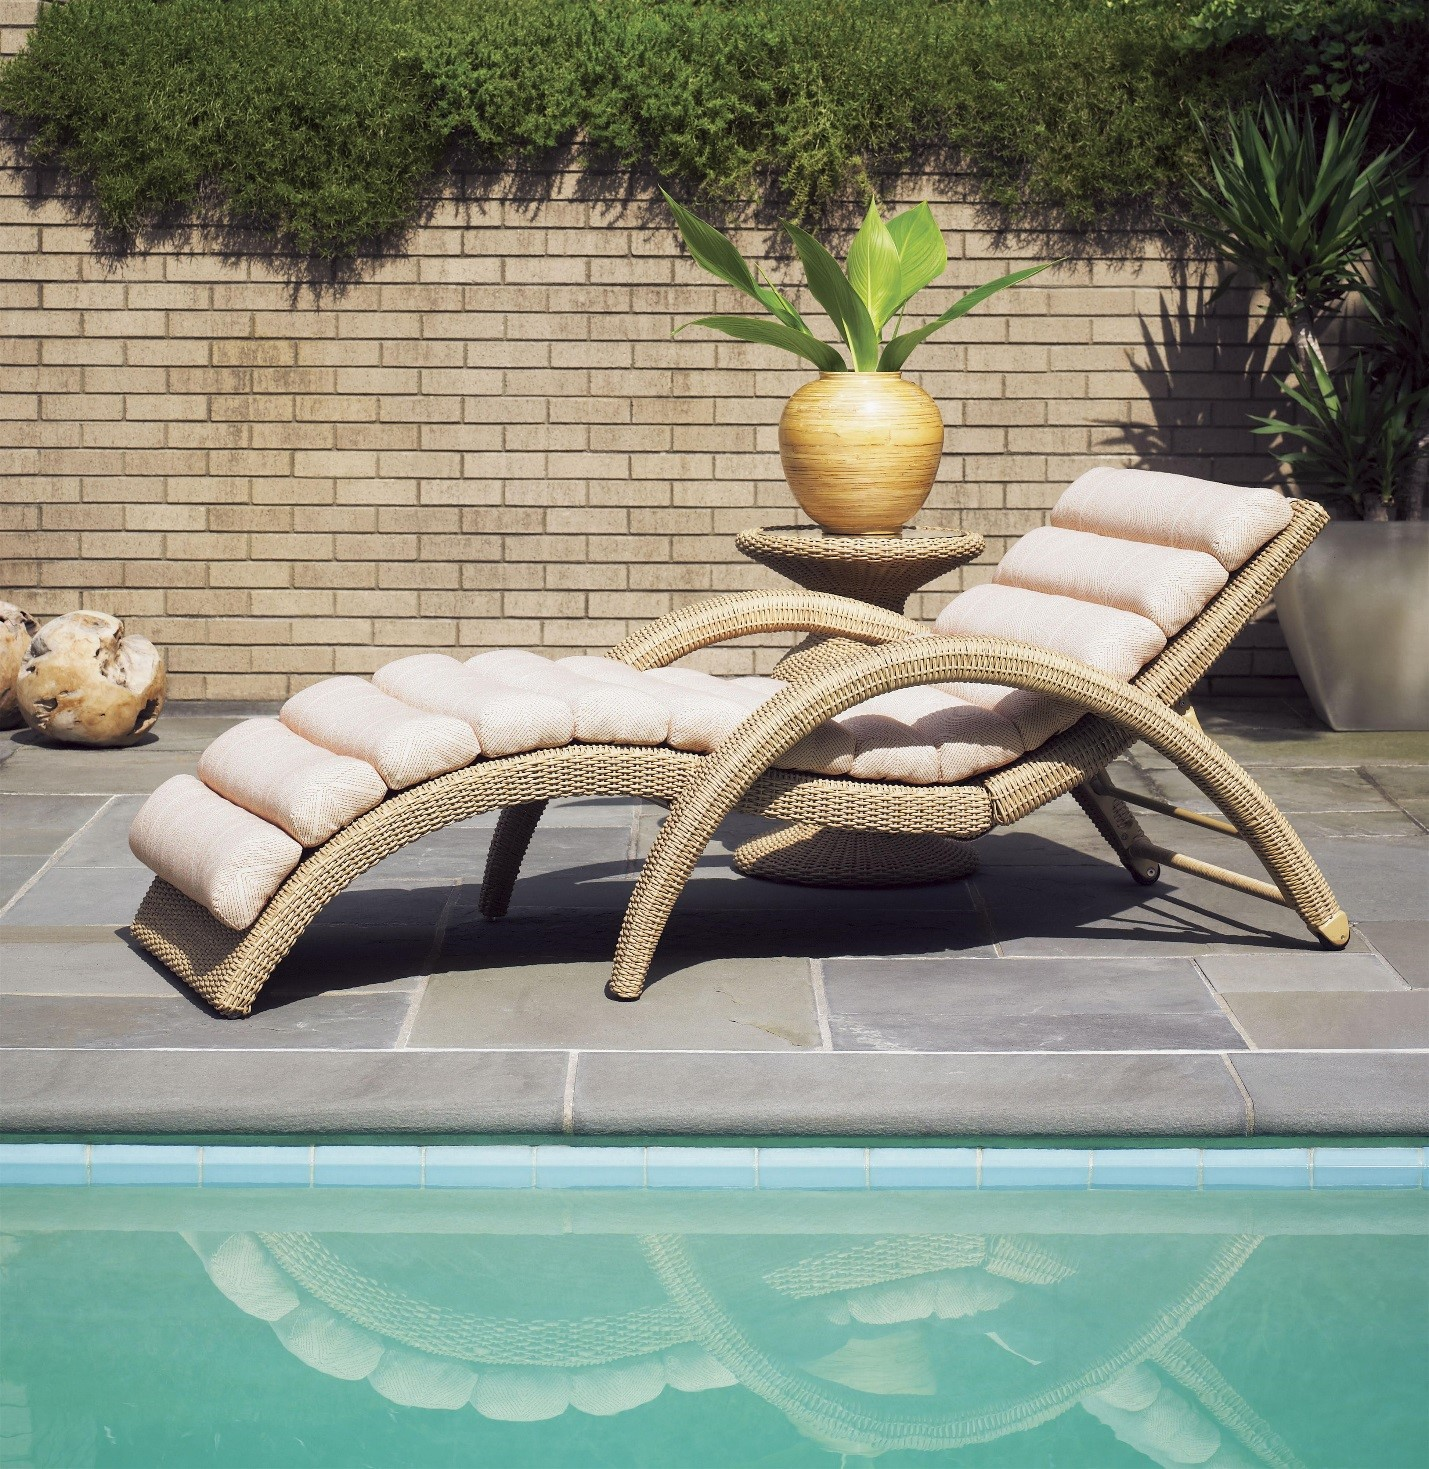 Patio Chaise Lounge From Baer S Furniture